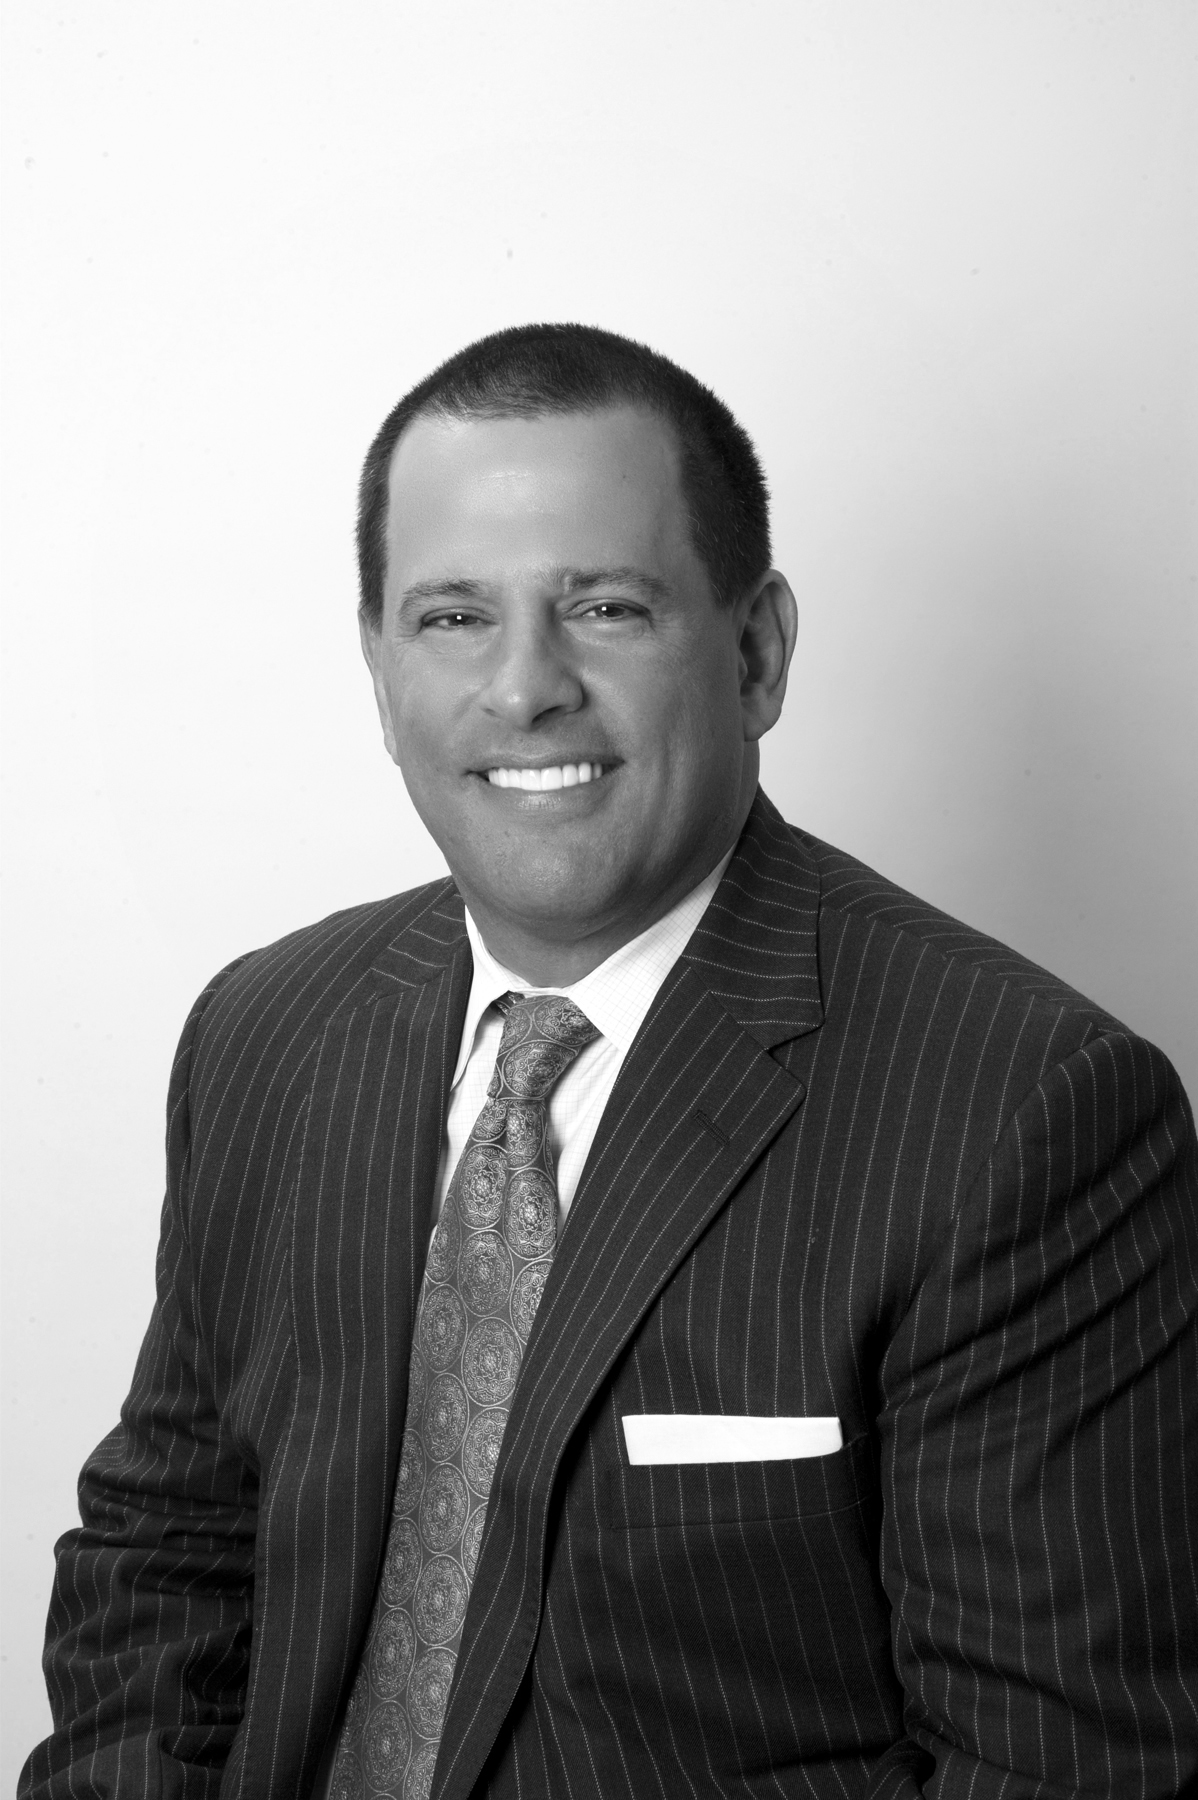 Christopher McMahon, financial advisor Lower Burrell PA